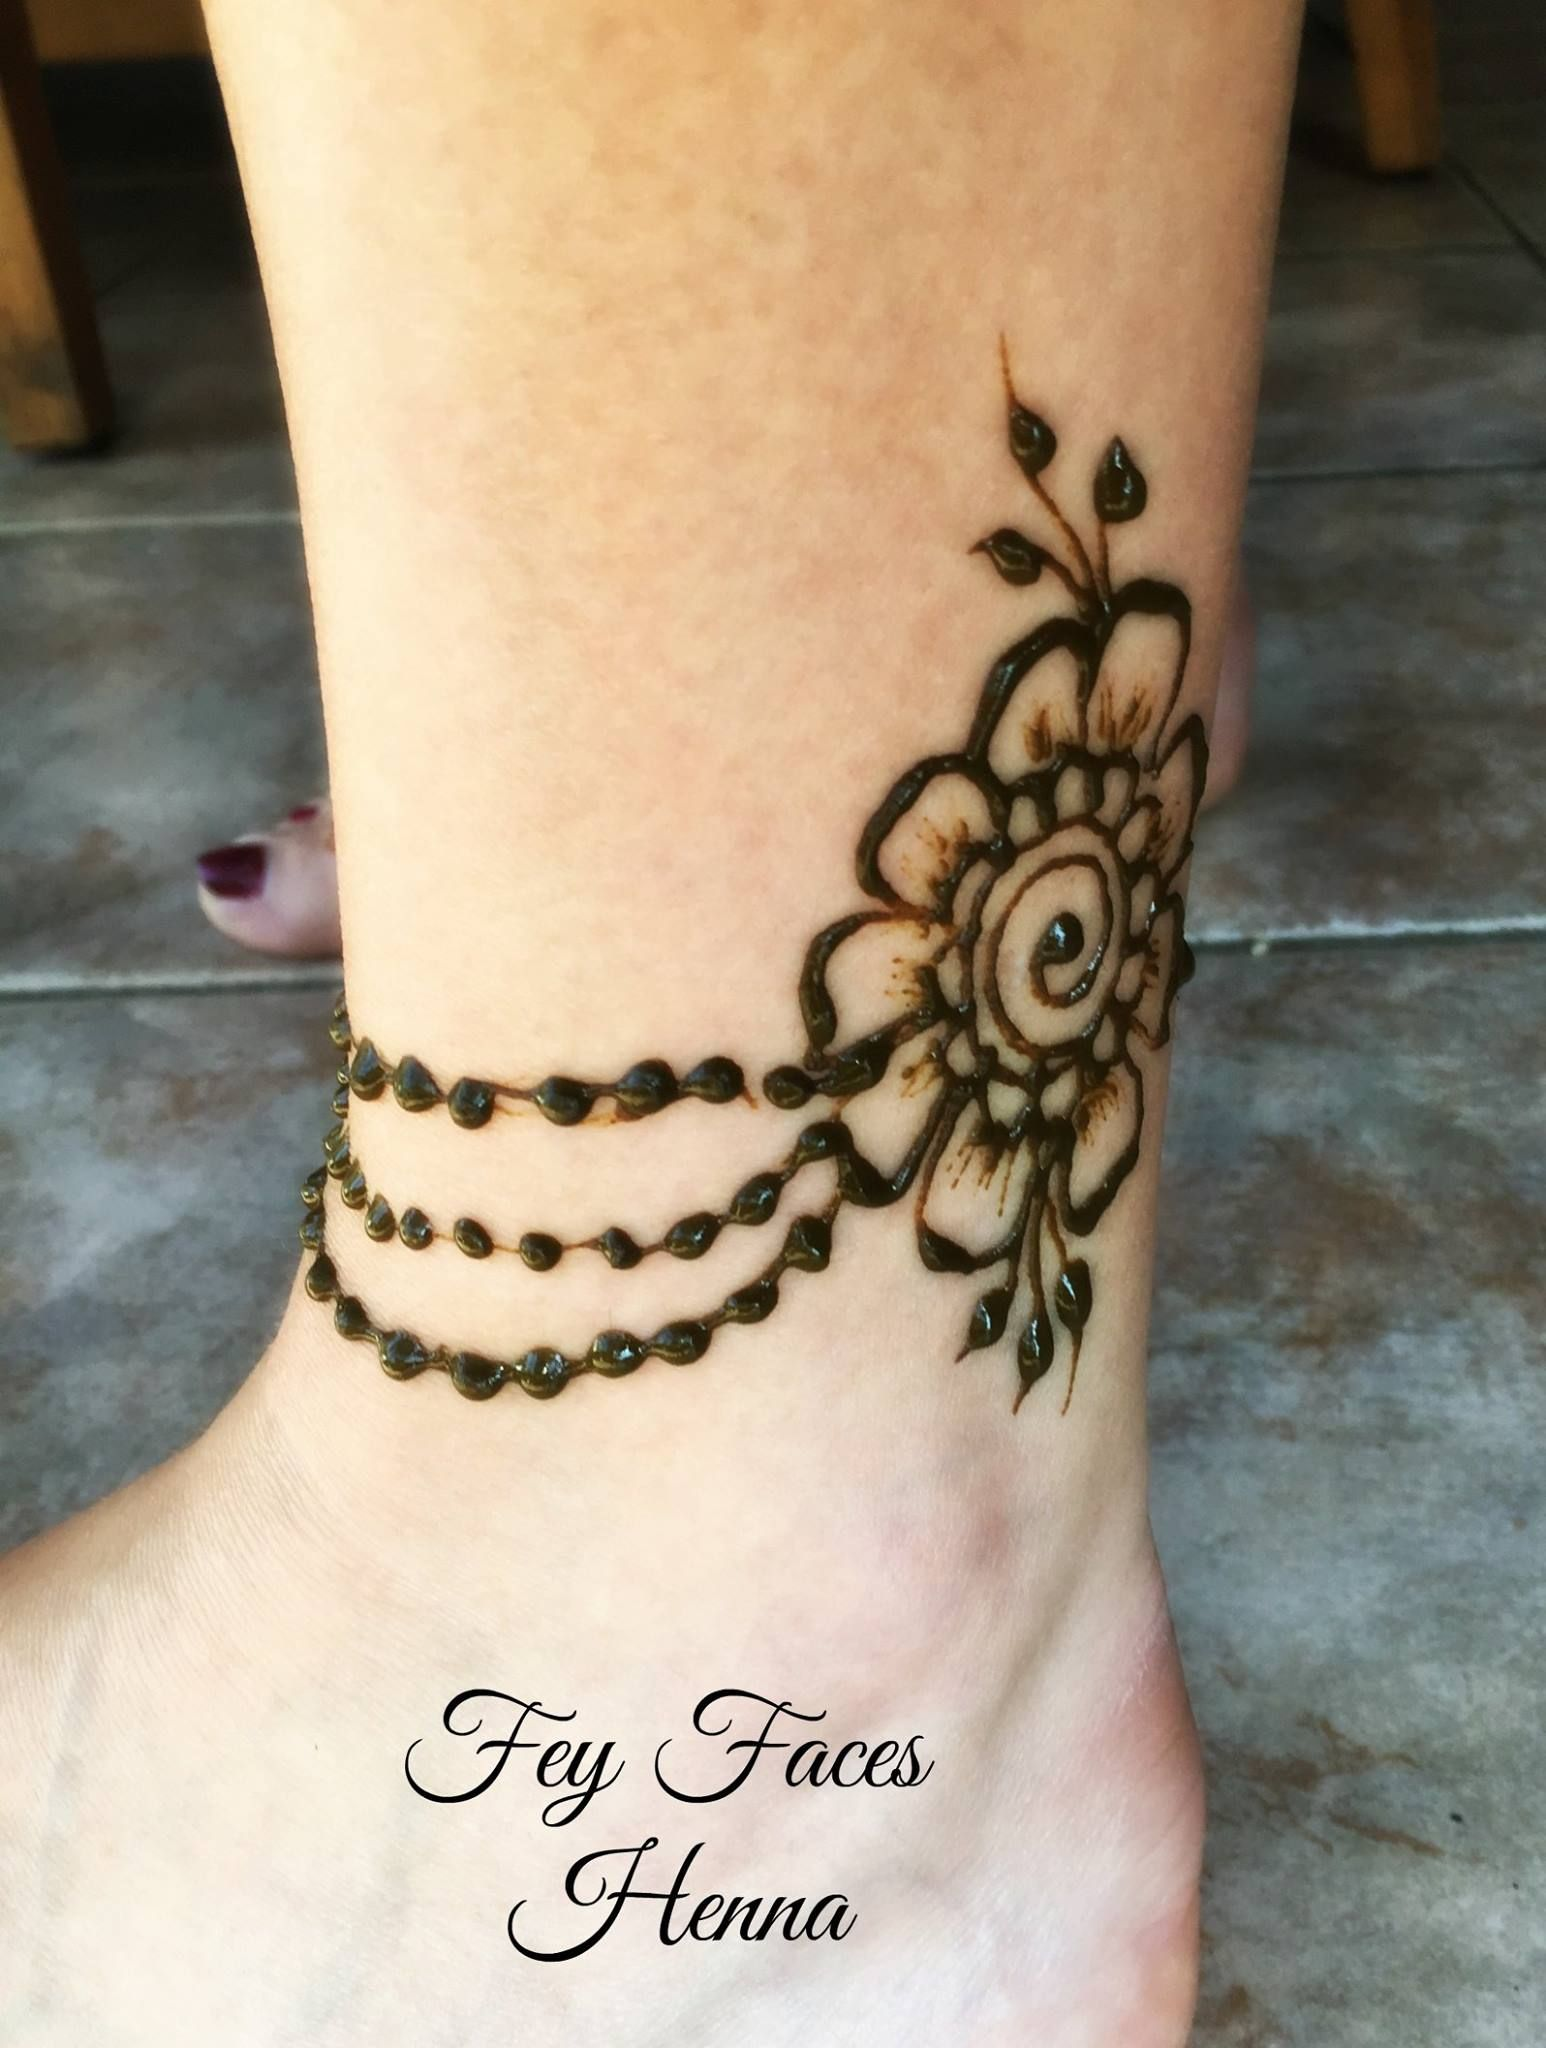 Henna Ankle Designs : henna, ankle, designs, Ankle, Henna, Design, Ankle,, Designs, Feet,, Tattoo